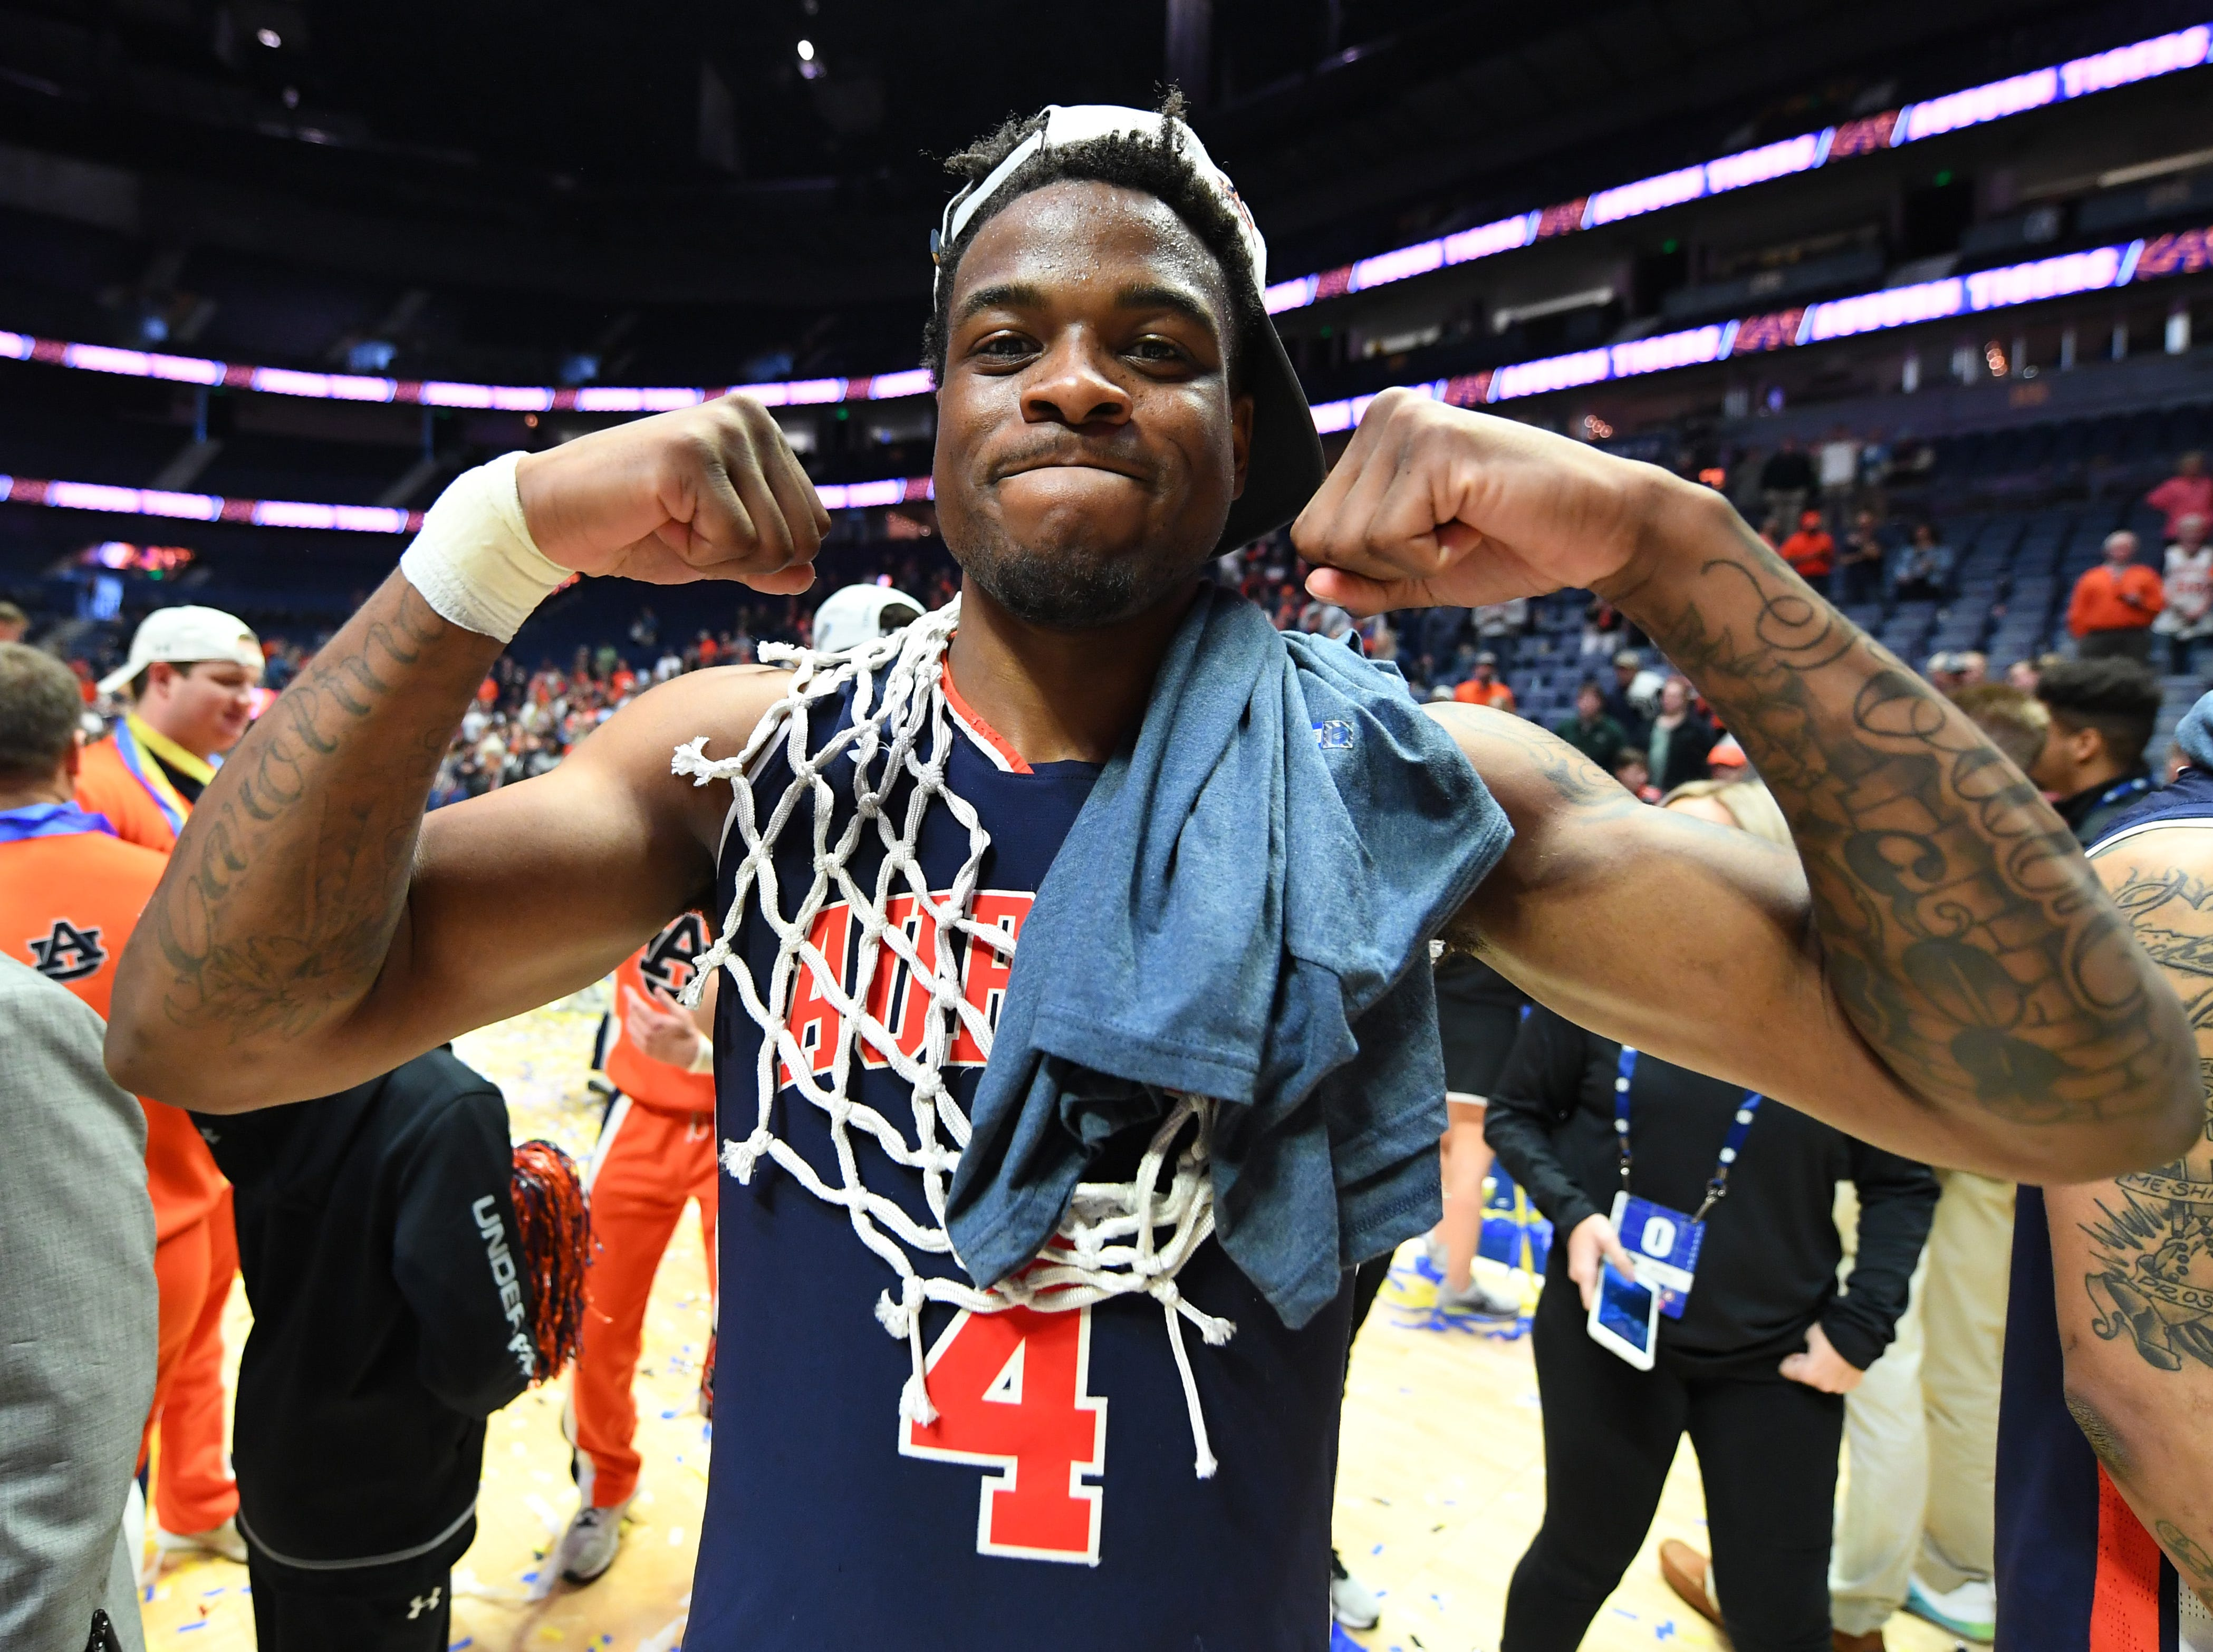 Mar 17, 2019; Nashville, TN, USA; Auburn Tigers guard Malik Dunbar (4) celebrates after beating the Tennessee Volunteers in the SEC conference tournament championship game at Bridgestone Arena. Mandatory Credit: Christopher Hanewinckel-USA TODAY Sports